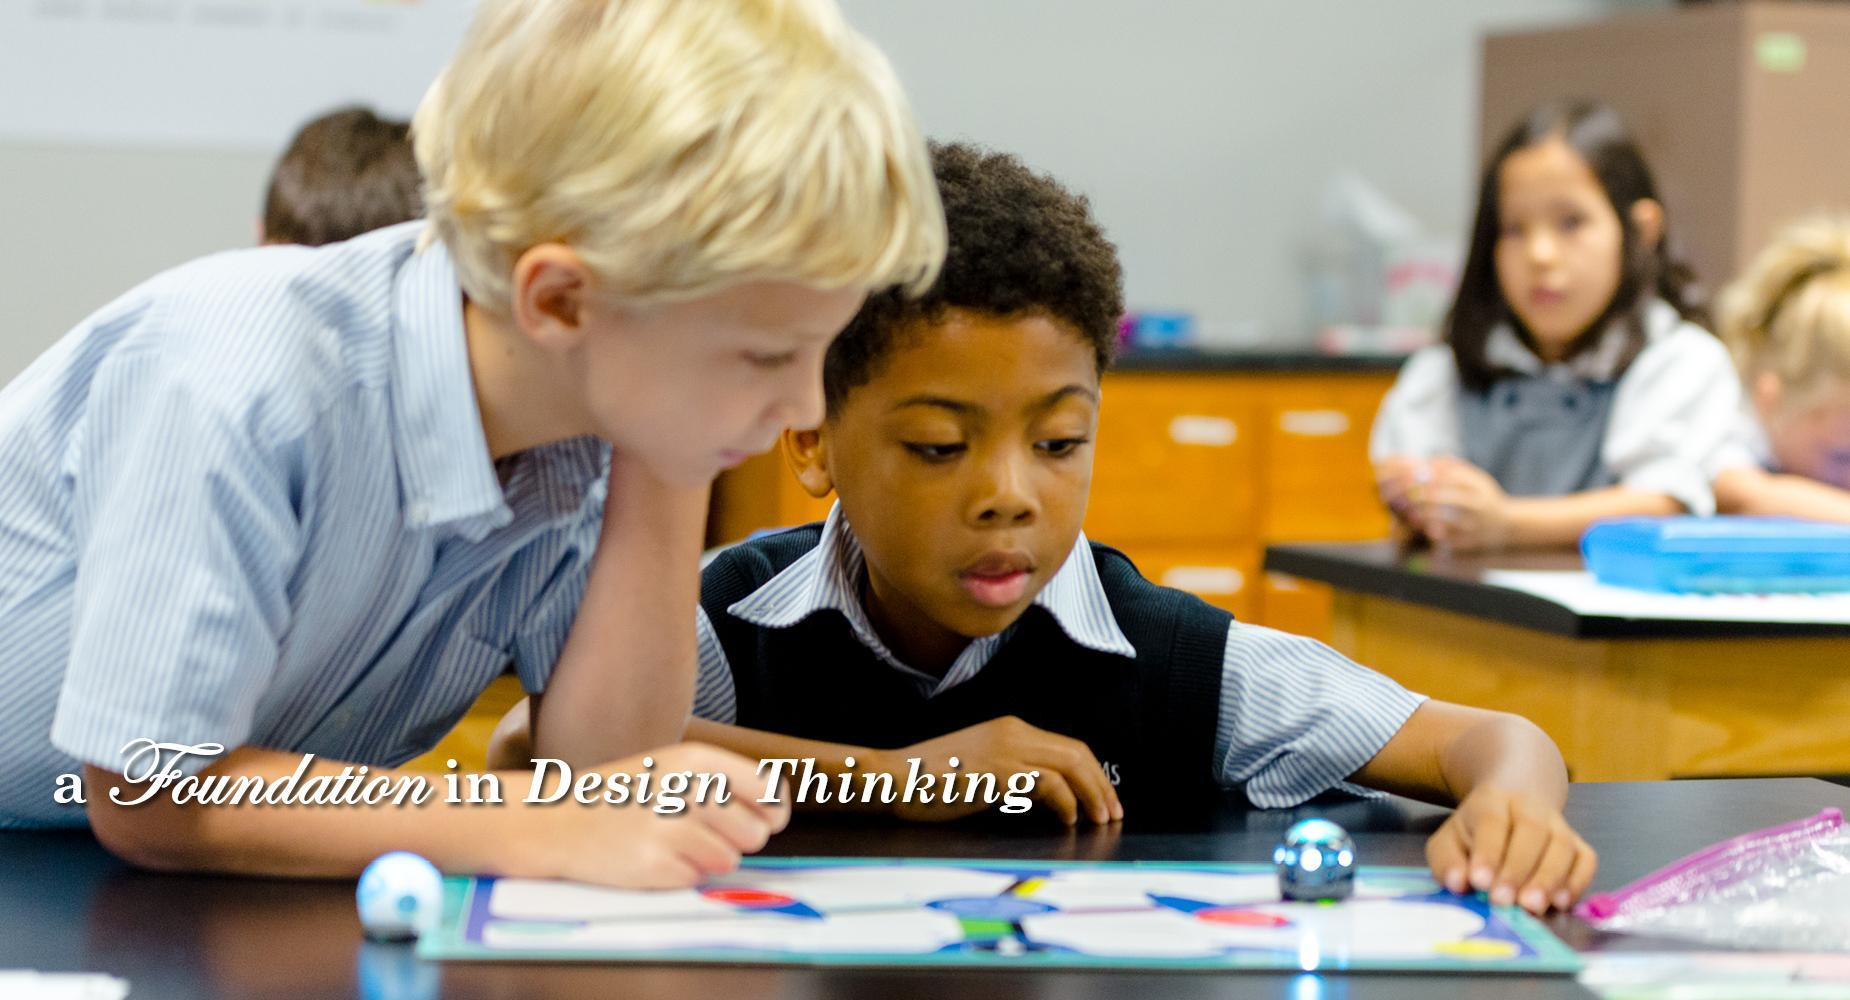 A Foundation in Design Thinking with students learning to code with robots